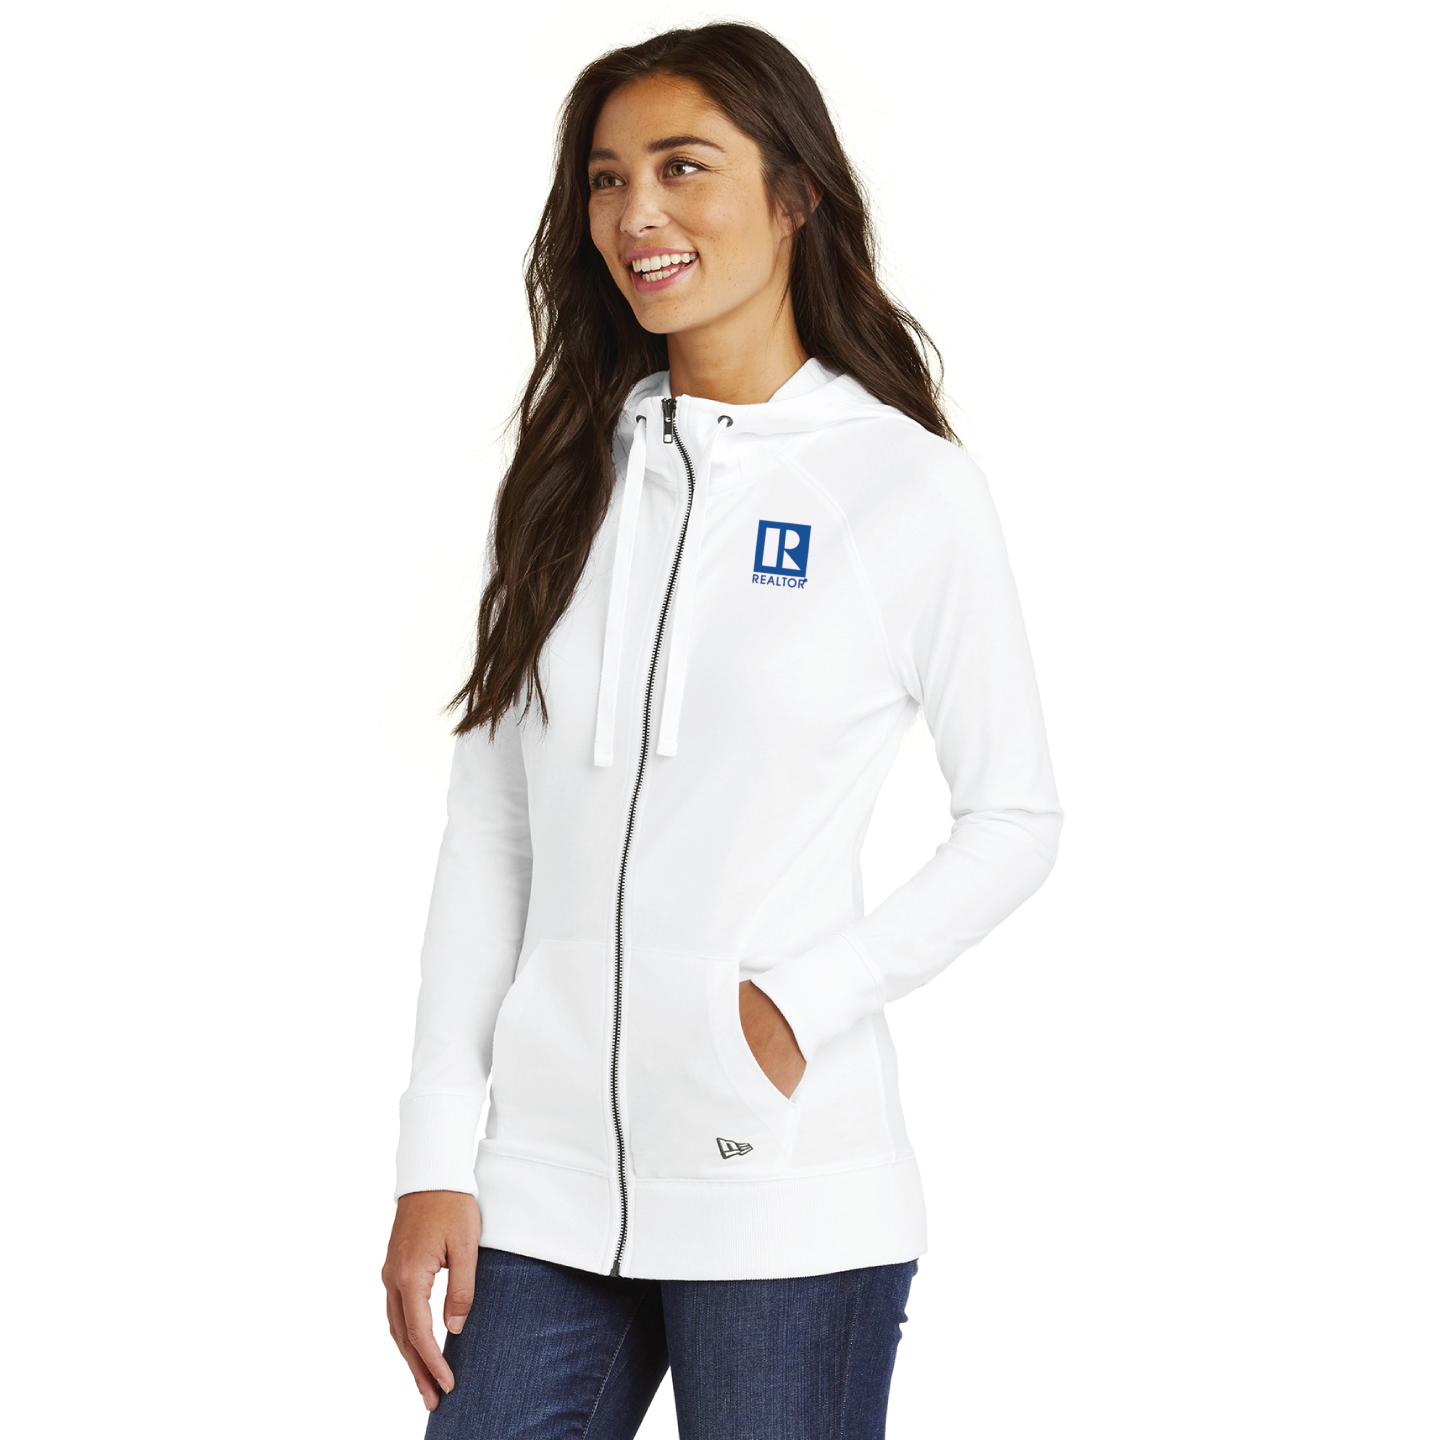 New Era® Ladies Sueded Cotton Blend Full-Zip Hoodie hoodies, zip, ladies, news, eras, fleeces, jackets, Sport, Fitness, Casual